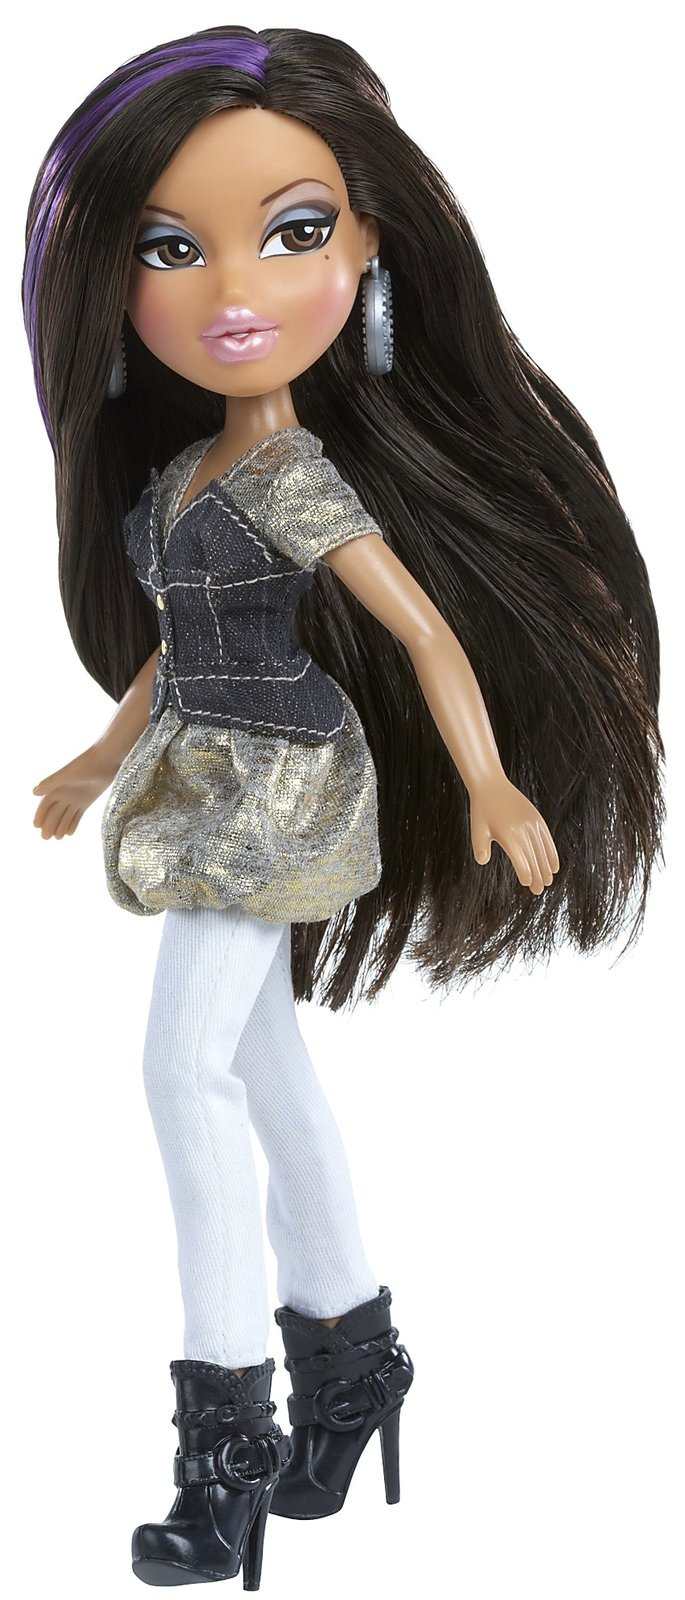 bratz the movie yasmin doll - photo #39